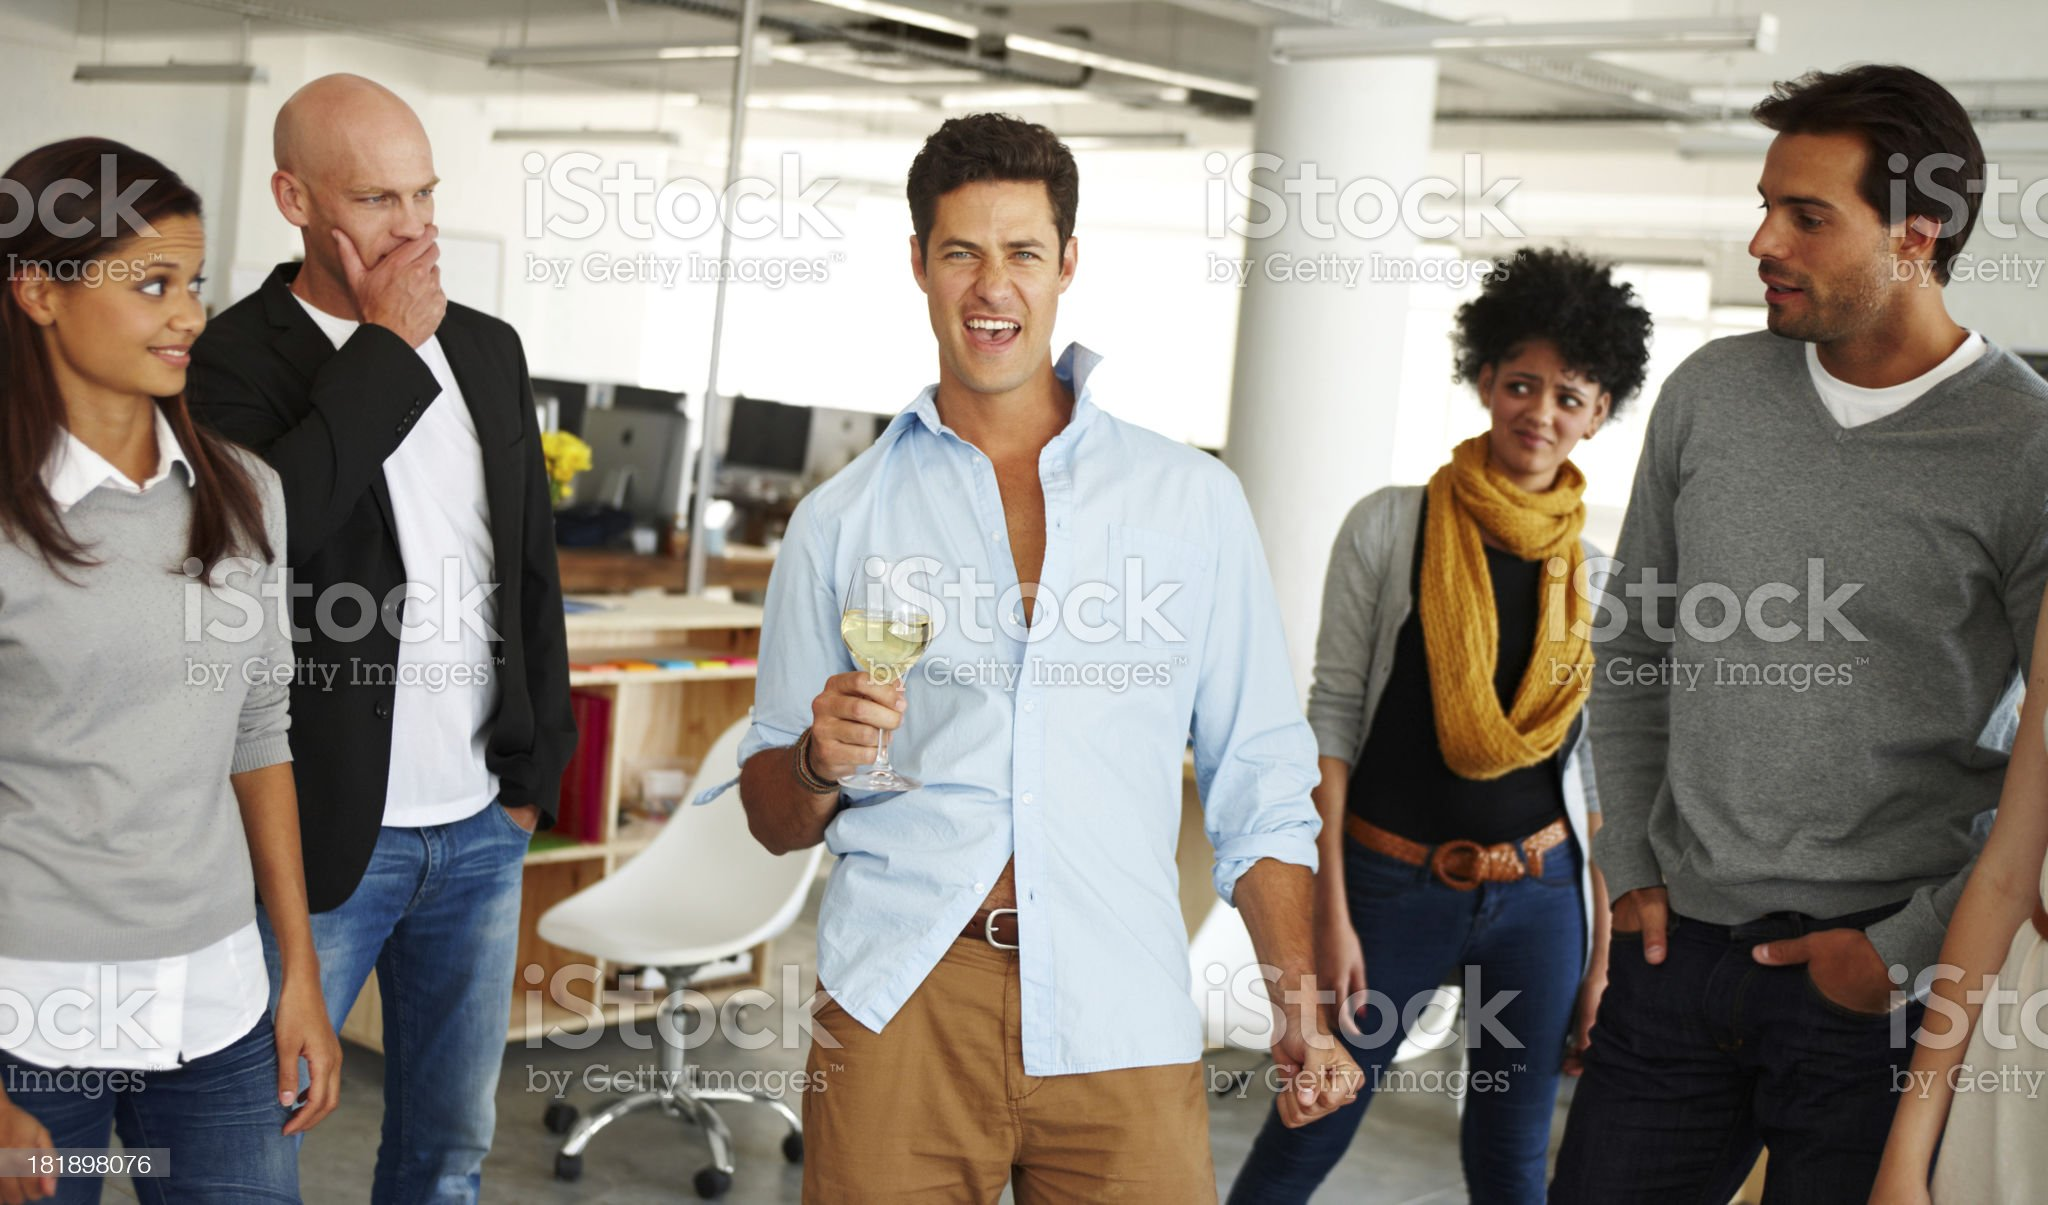 Man dancing at office party royalty-free stock photo